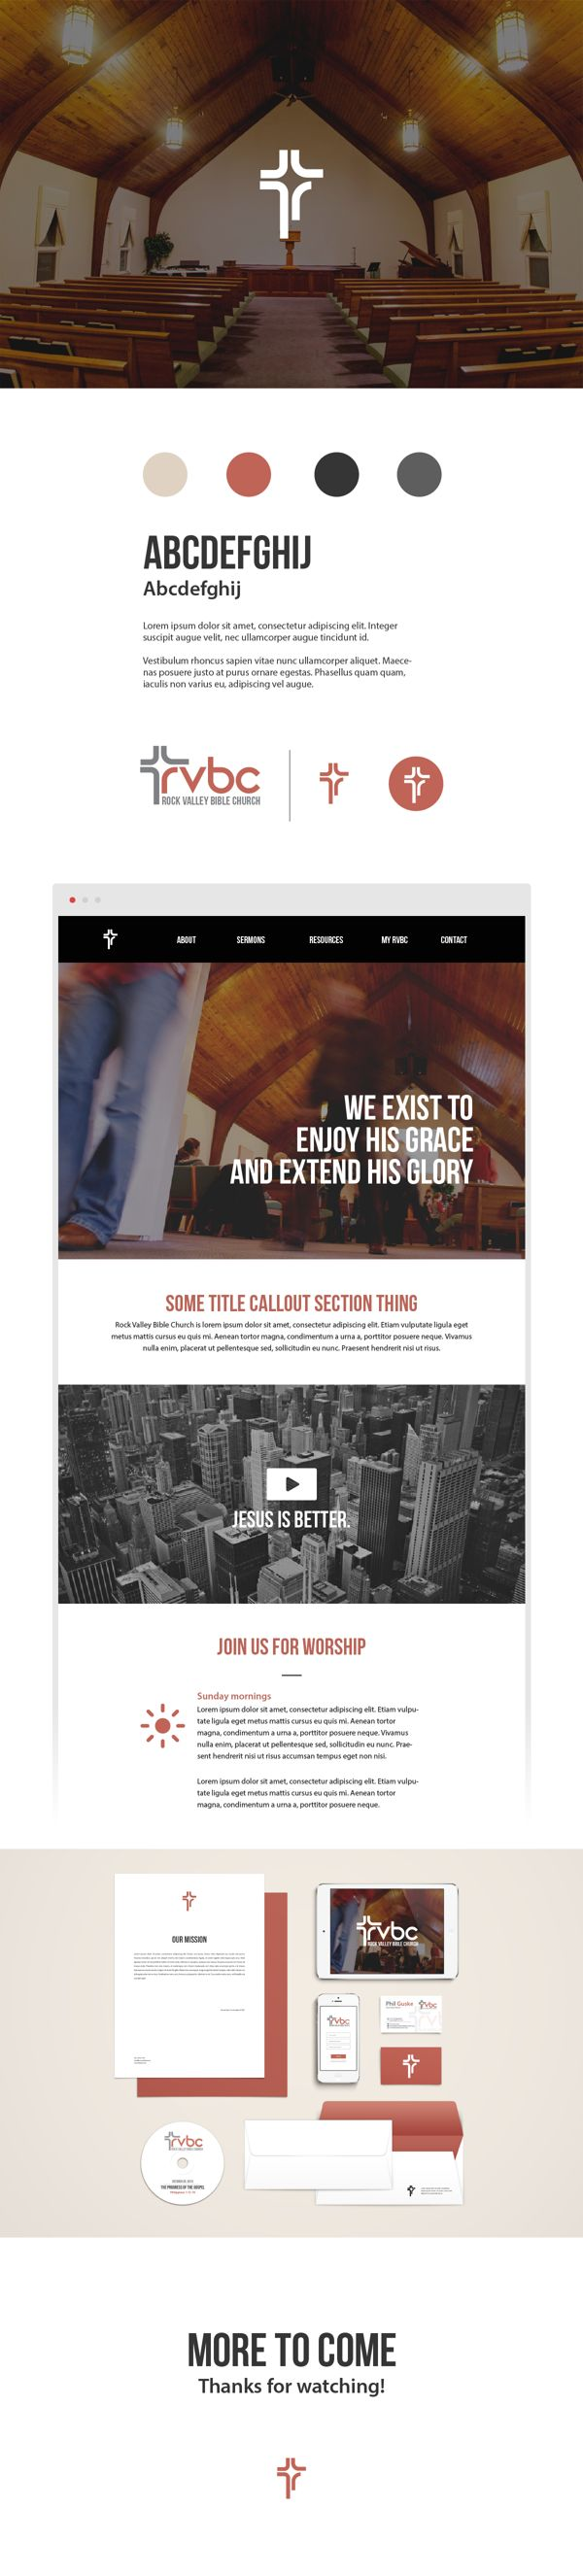 Branding and website Rock Valley Bible Church by http://srbrandon.com/